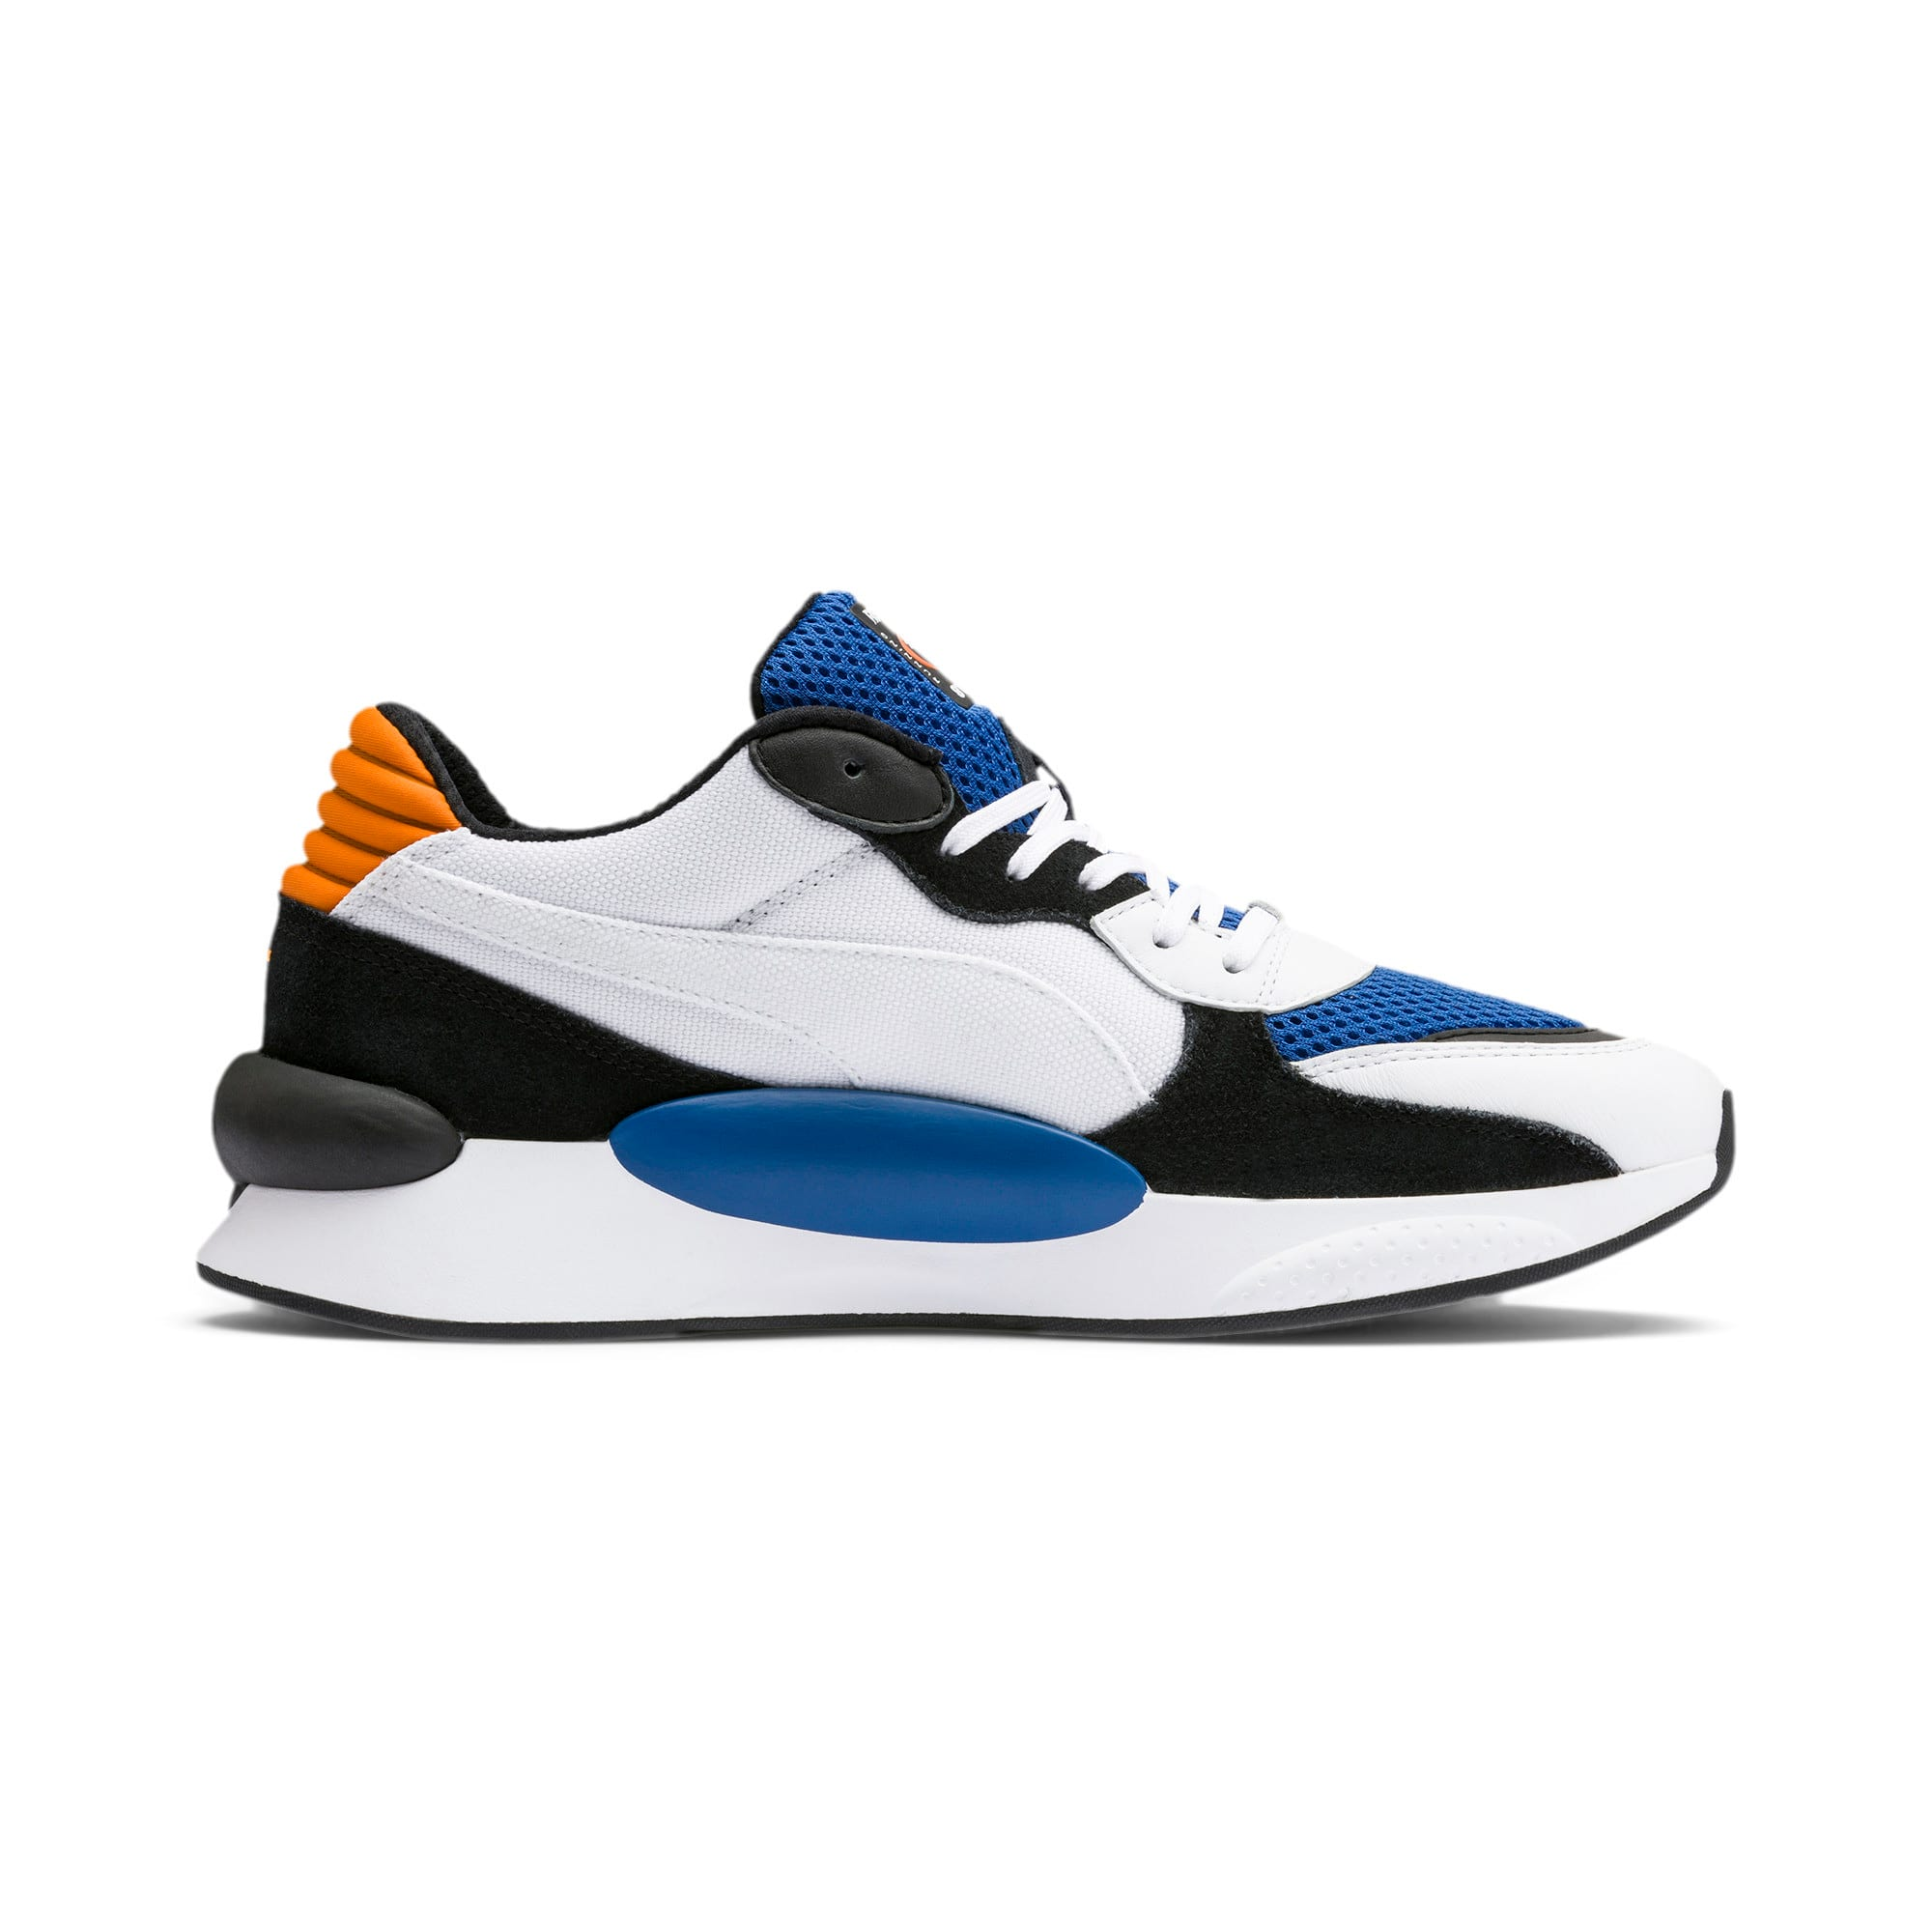 Thumbnail 6 of RS 9.8 Cosmic Trainers, Puma White-Galaxy Blue, medium